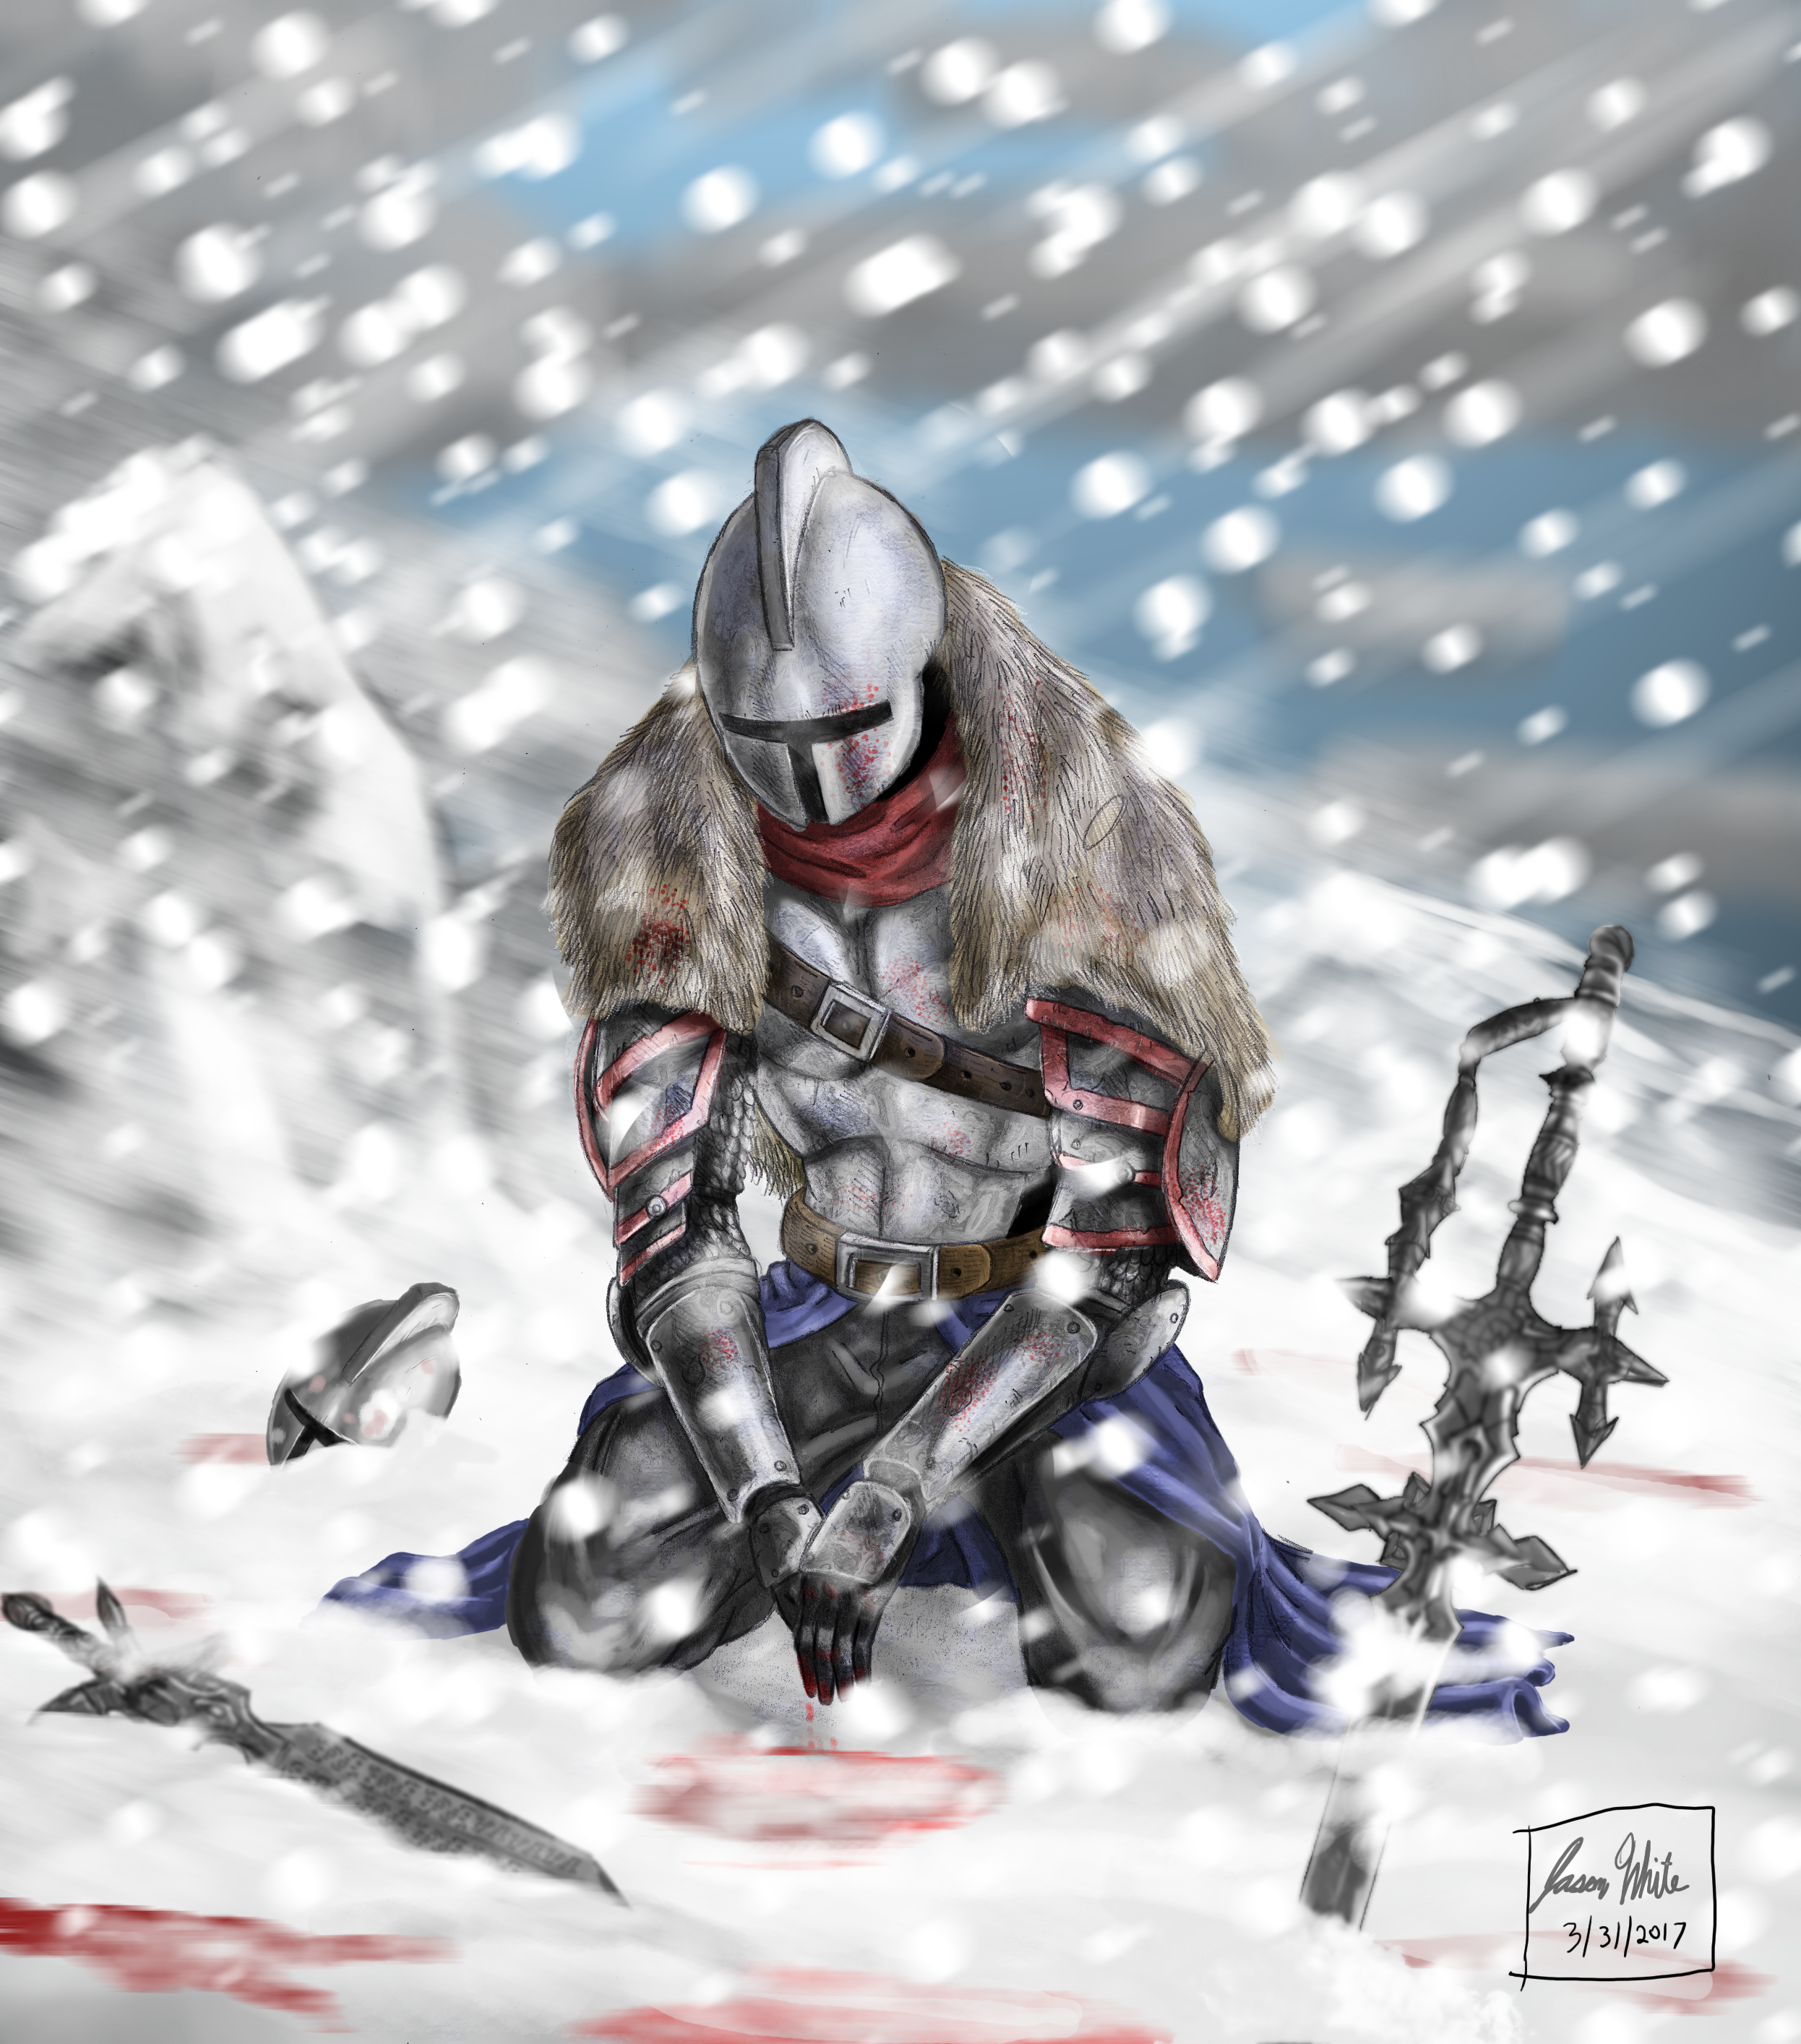 Weary Soldier